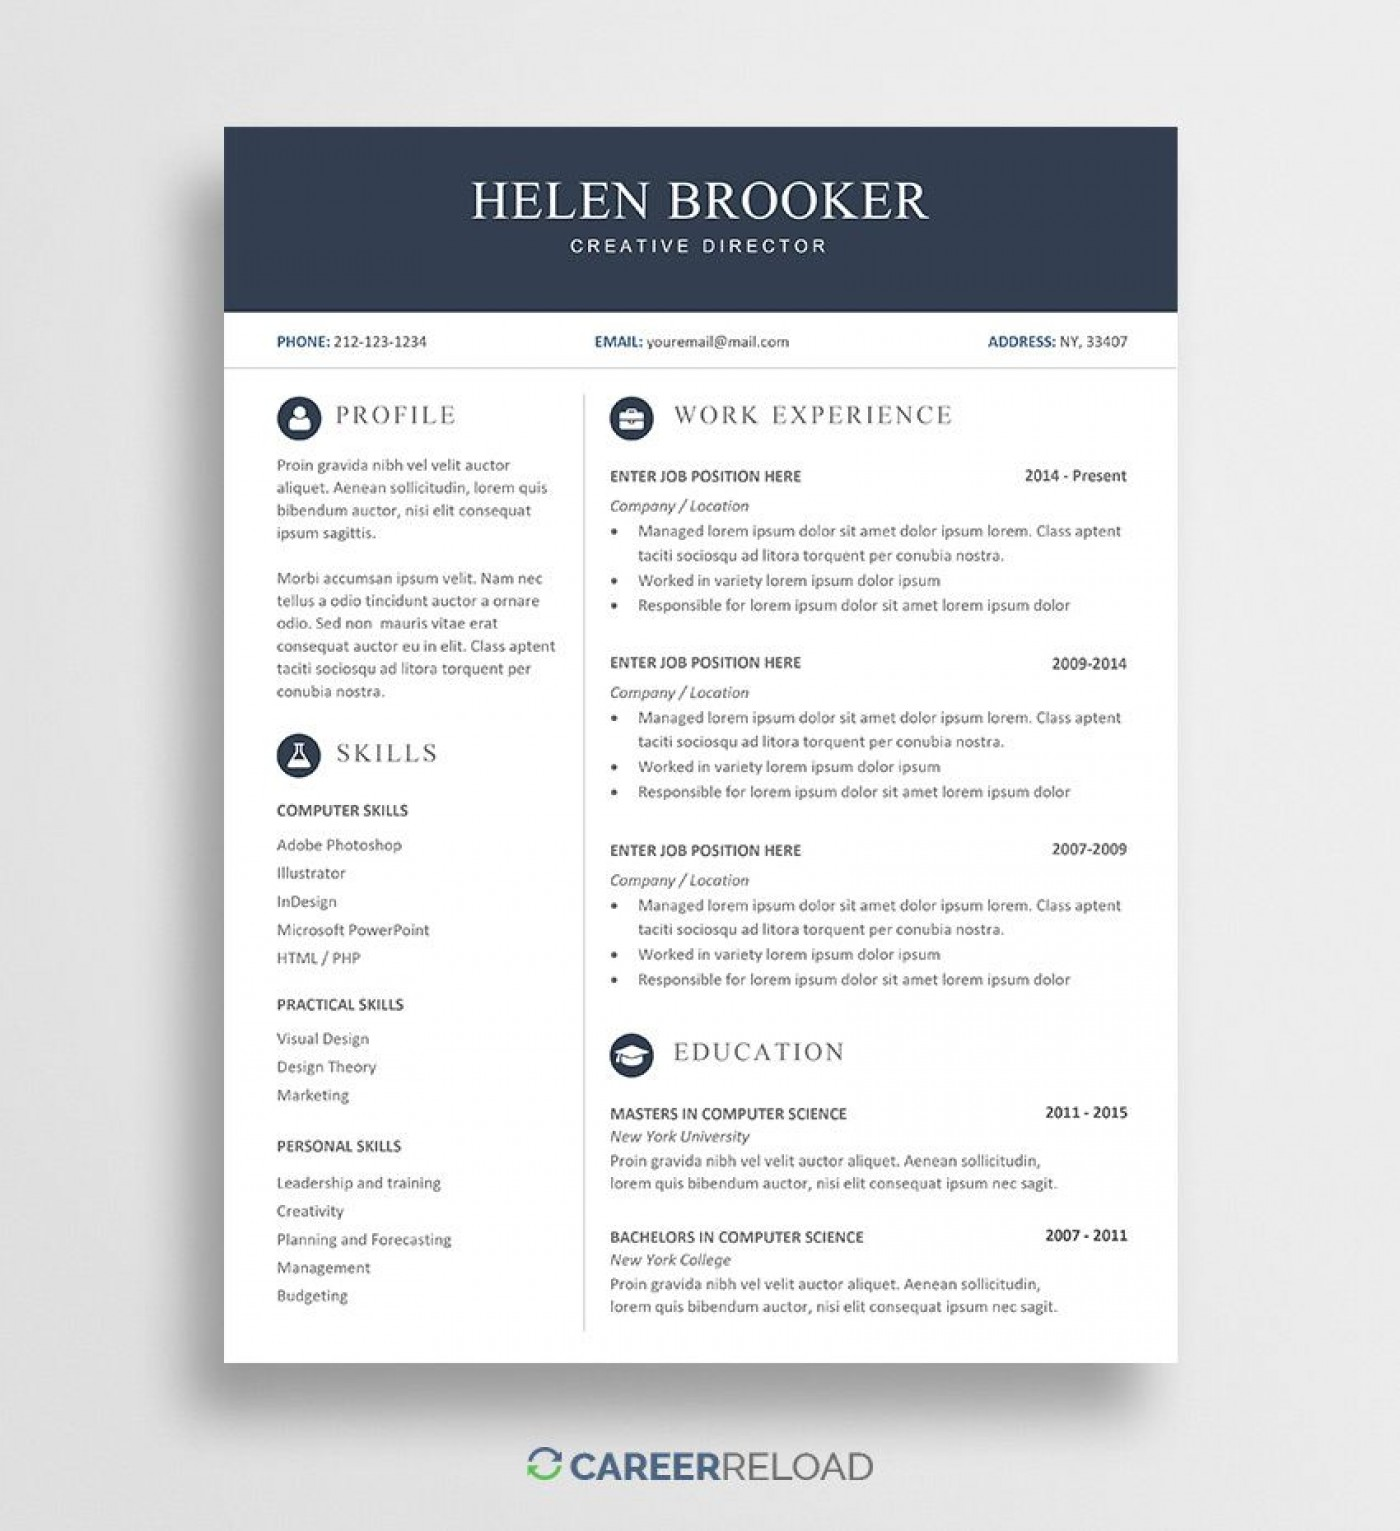 004 Stupendou Download Resume Template Word 2007 Sample 1400